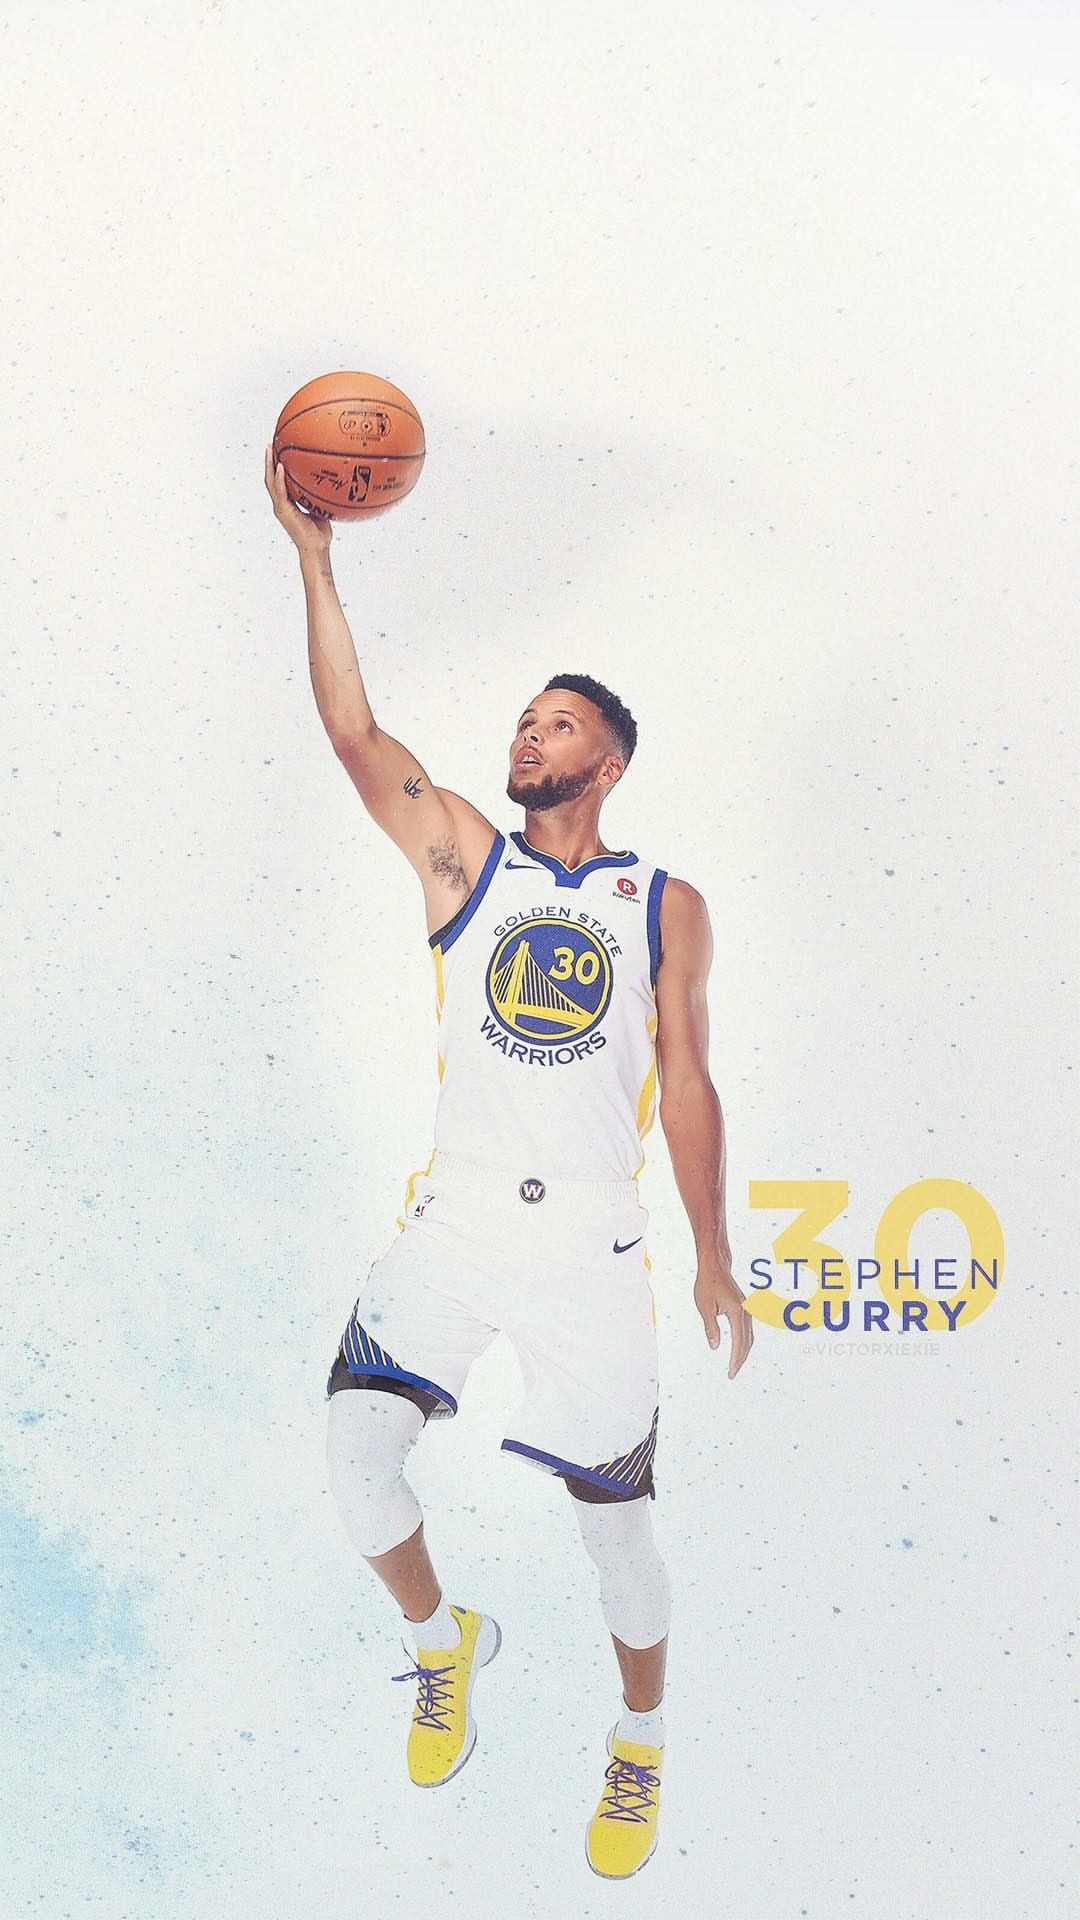 Stephen Curry Wallpaper Stephen Curry Wallpaper Nba Stephen Curry Curry Wallpaper